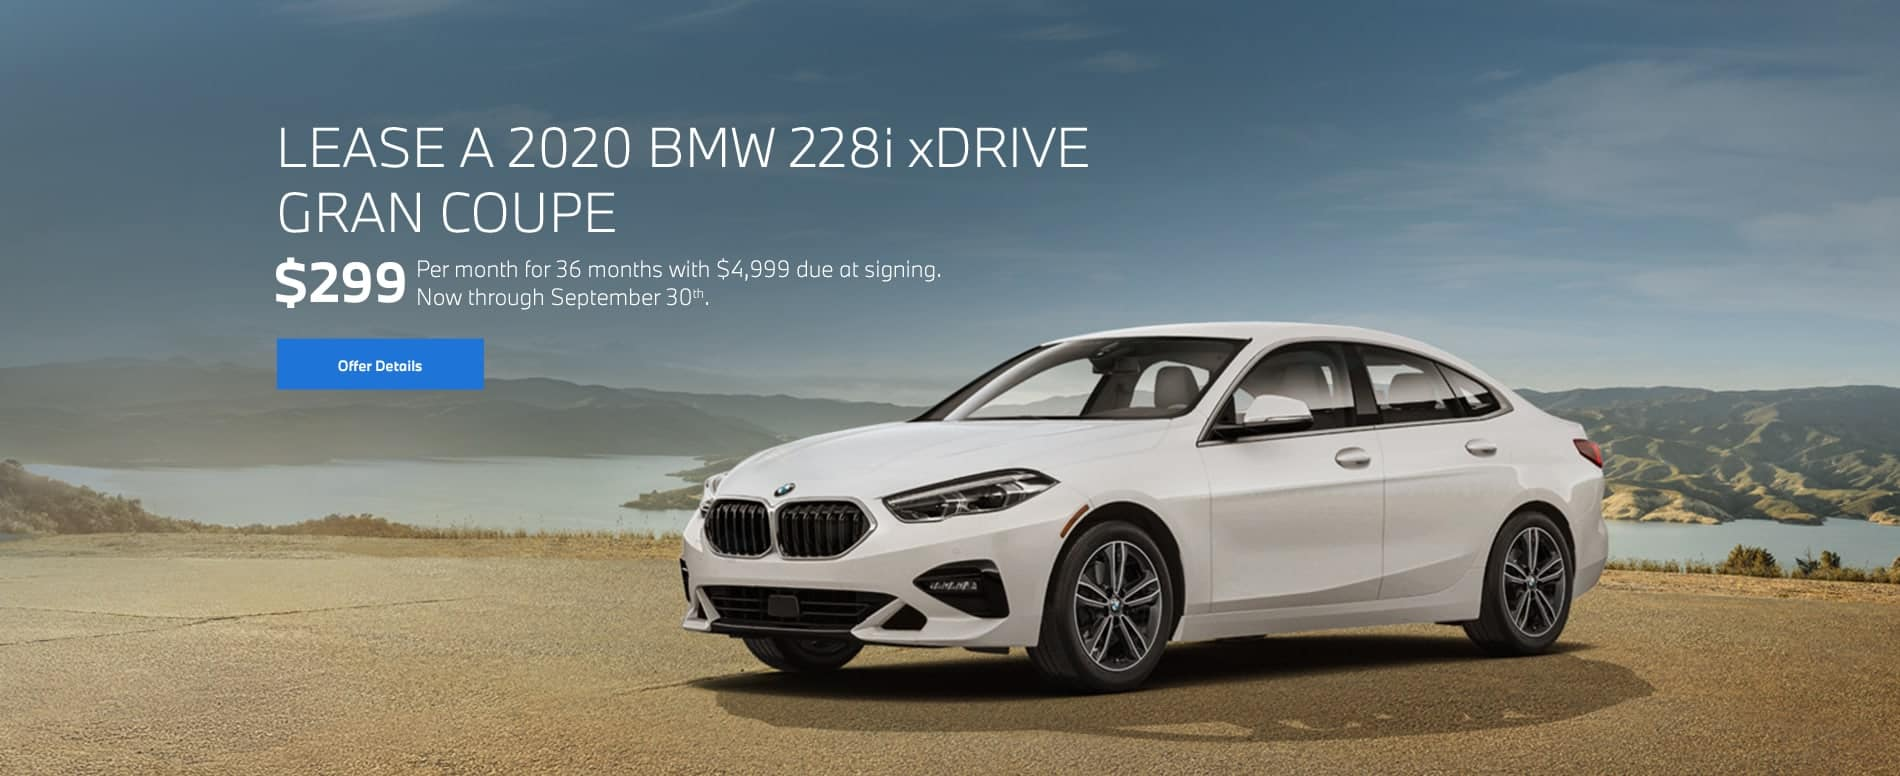 2020 BMW 228i xDrive Gran Coupe for $299/mo